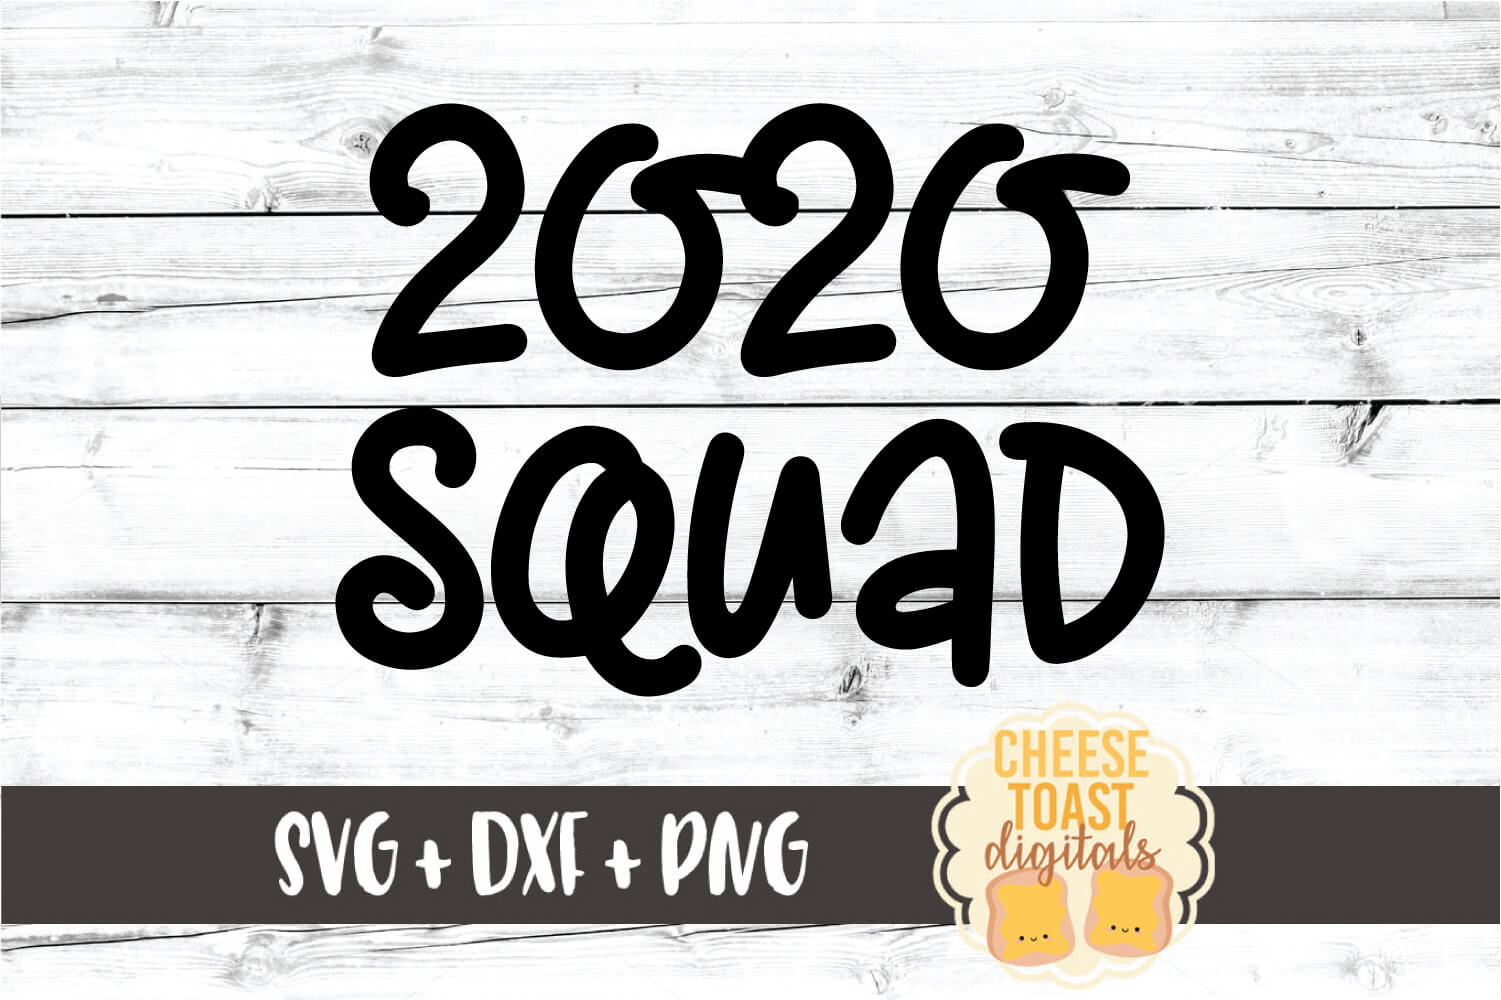 2020 Squad - New Year SVG PNG DXF Cut Files example image 2